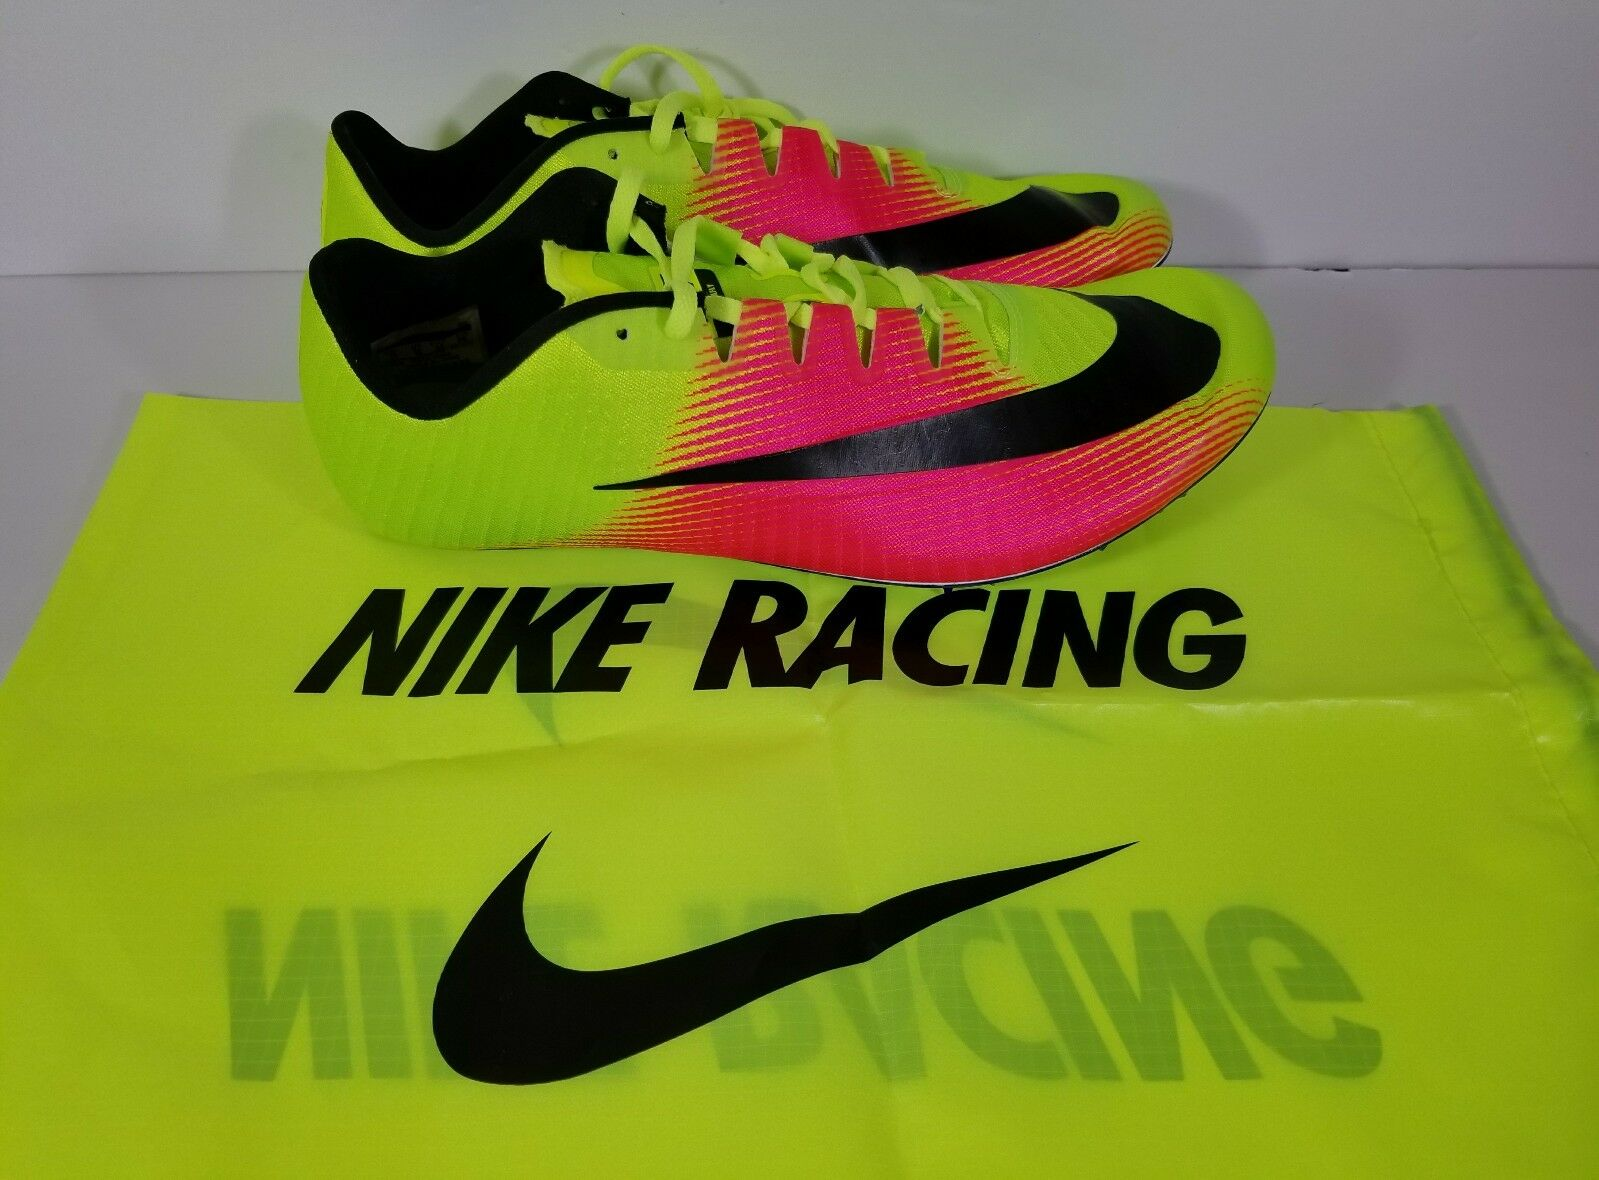 Special limited time Nike Zoom JA FLY 3 OC Rio Track & Field Spikes Men's Comfortable